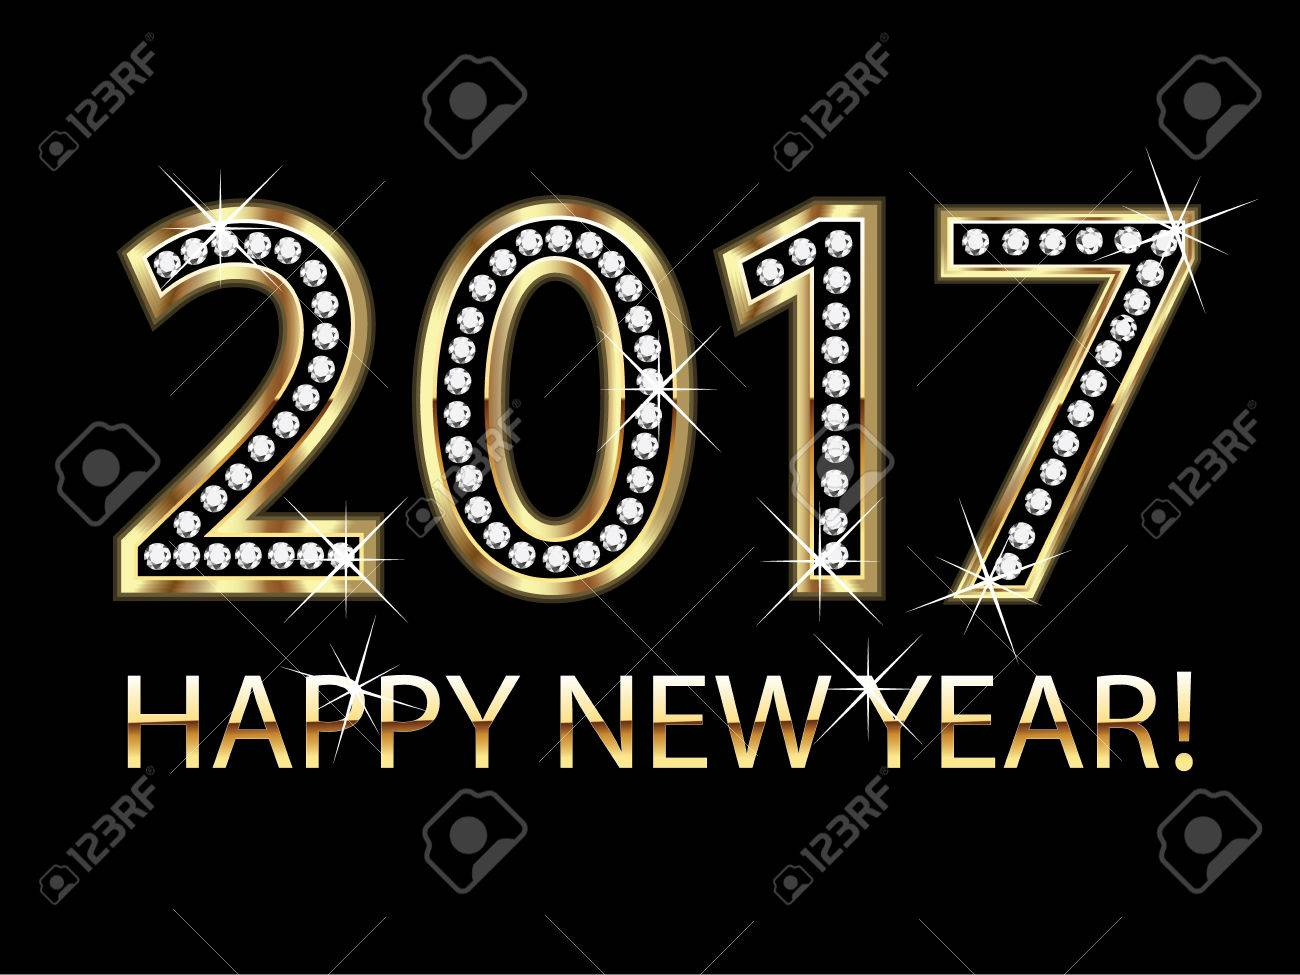 Happy new year 2017 gold background vector - 58532151